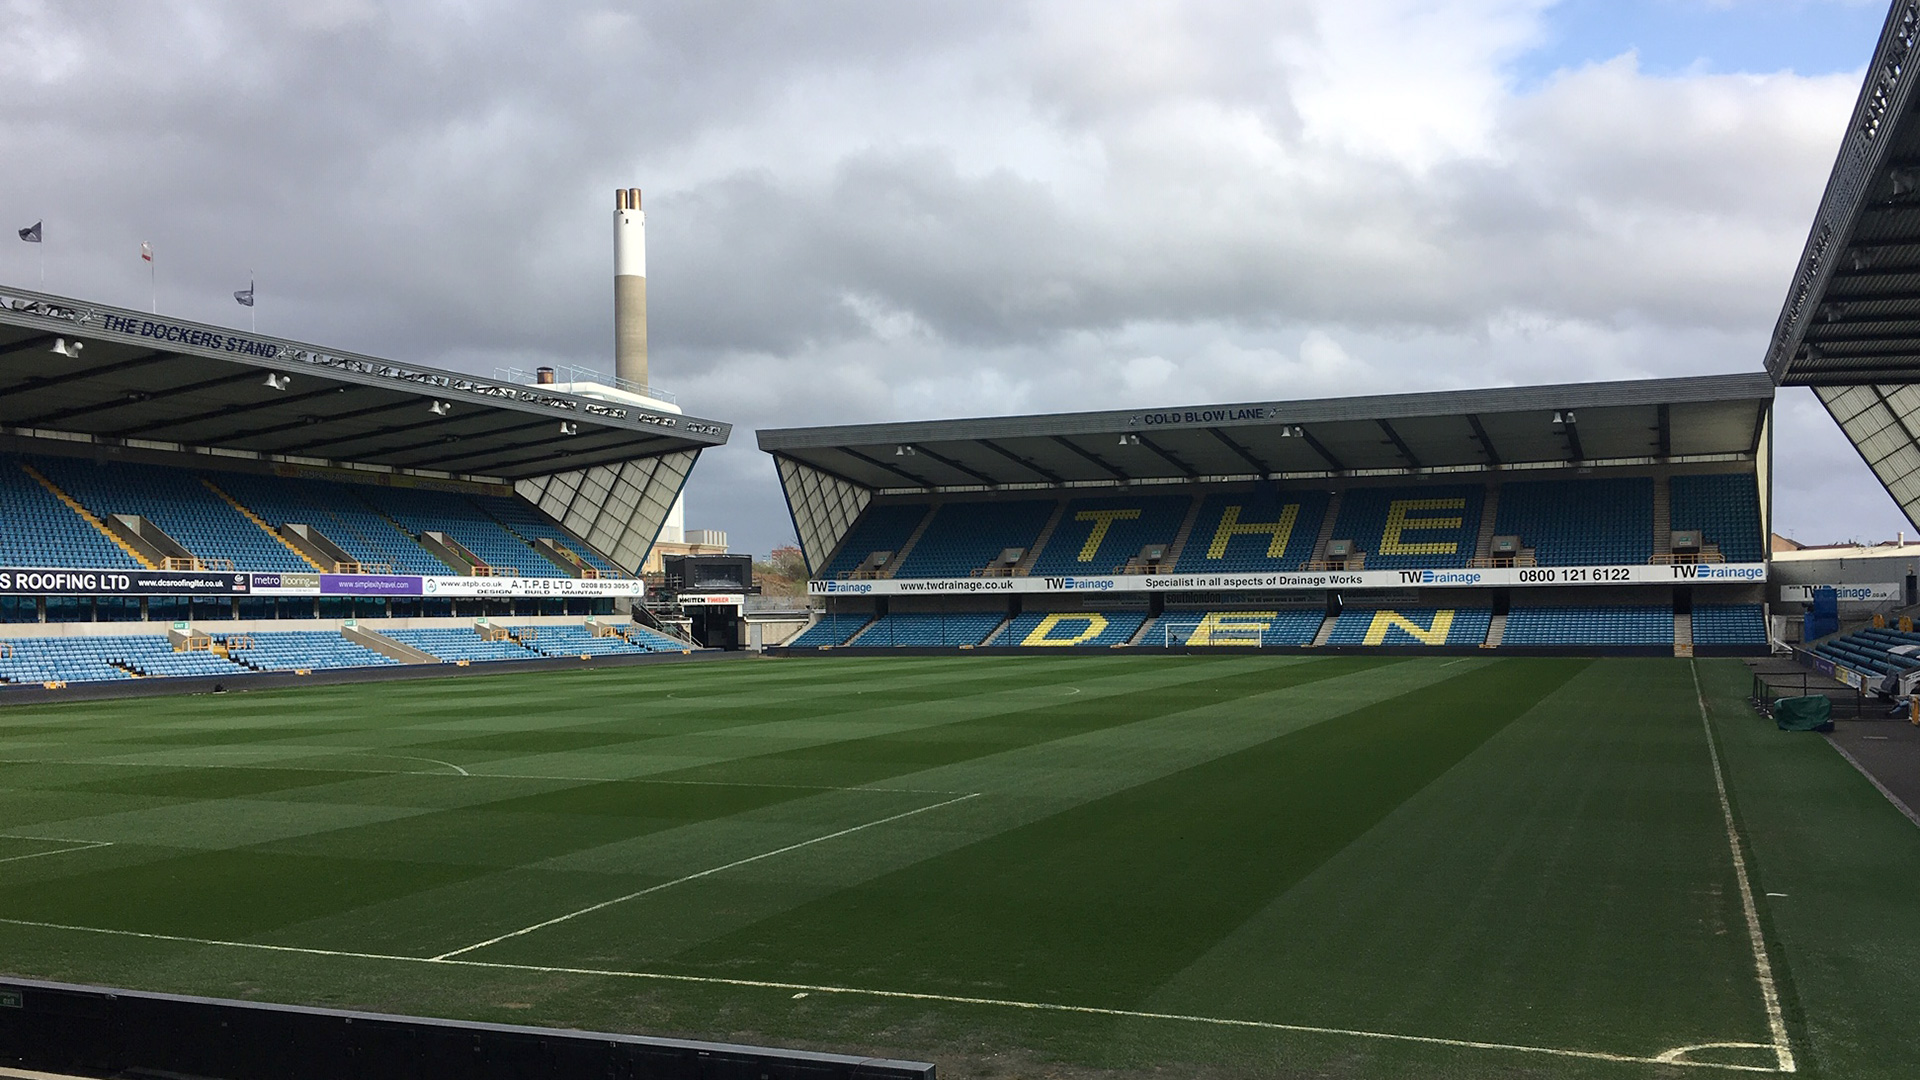 Millwall's football ground, The Den